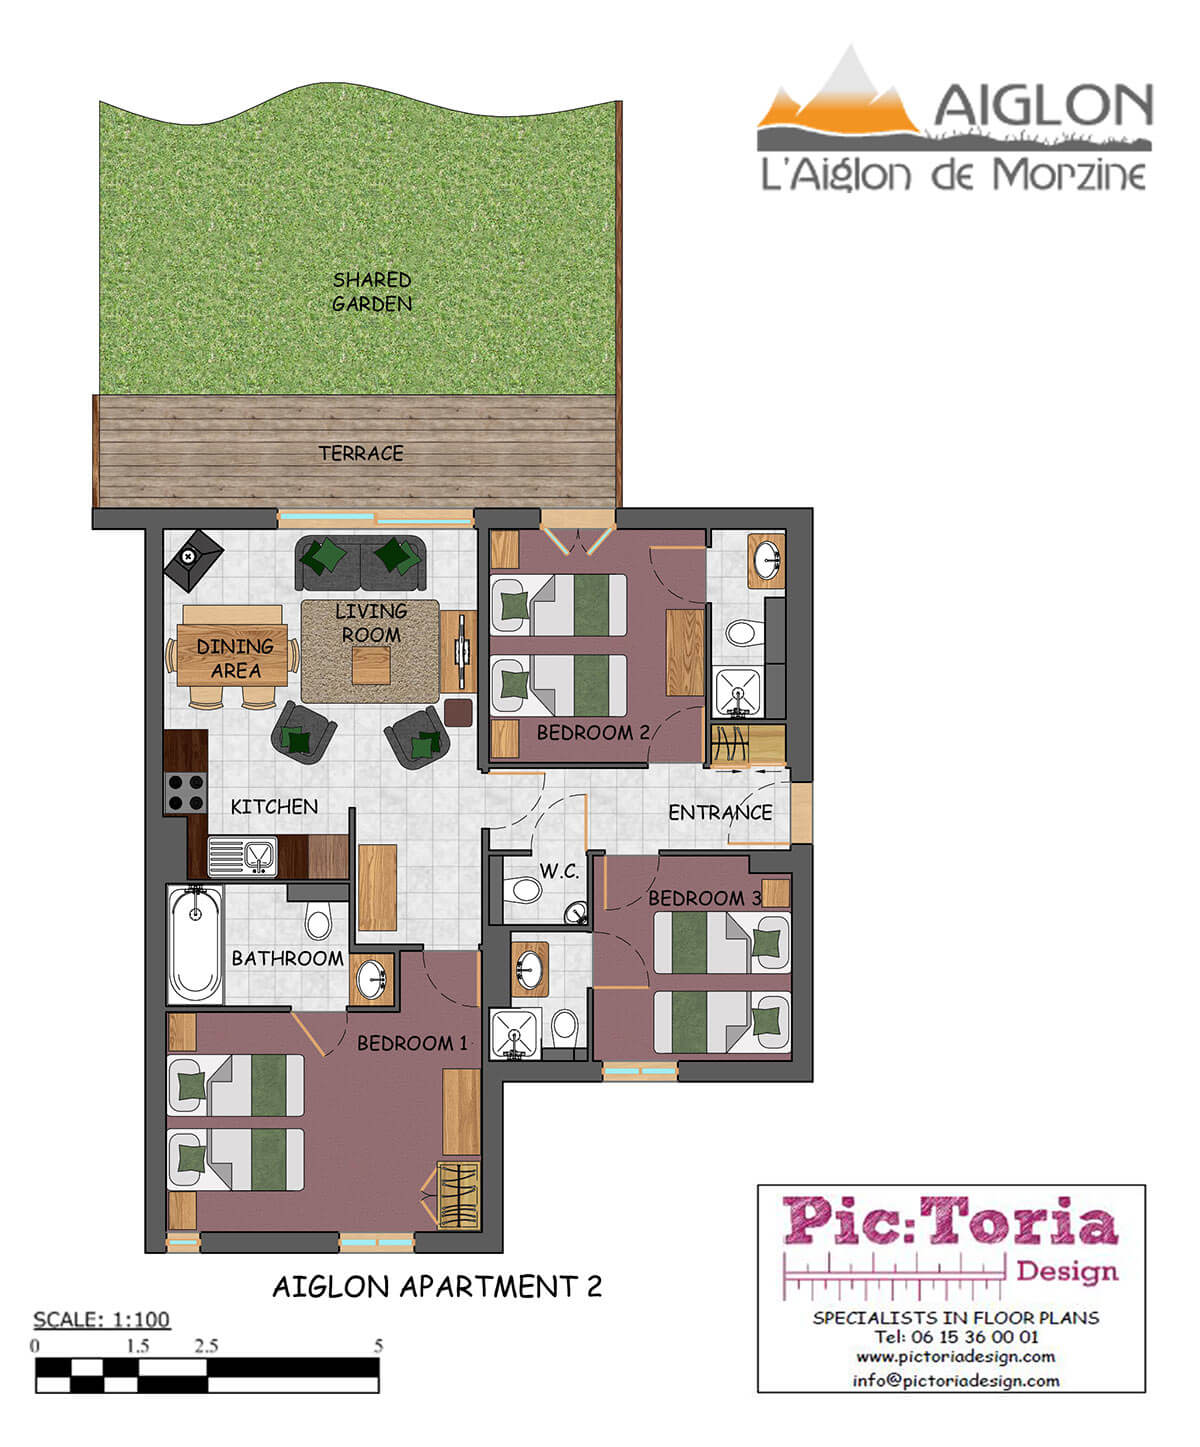 Image of Aiglon Morzine Self Catered Apartments #2 floor plan